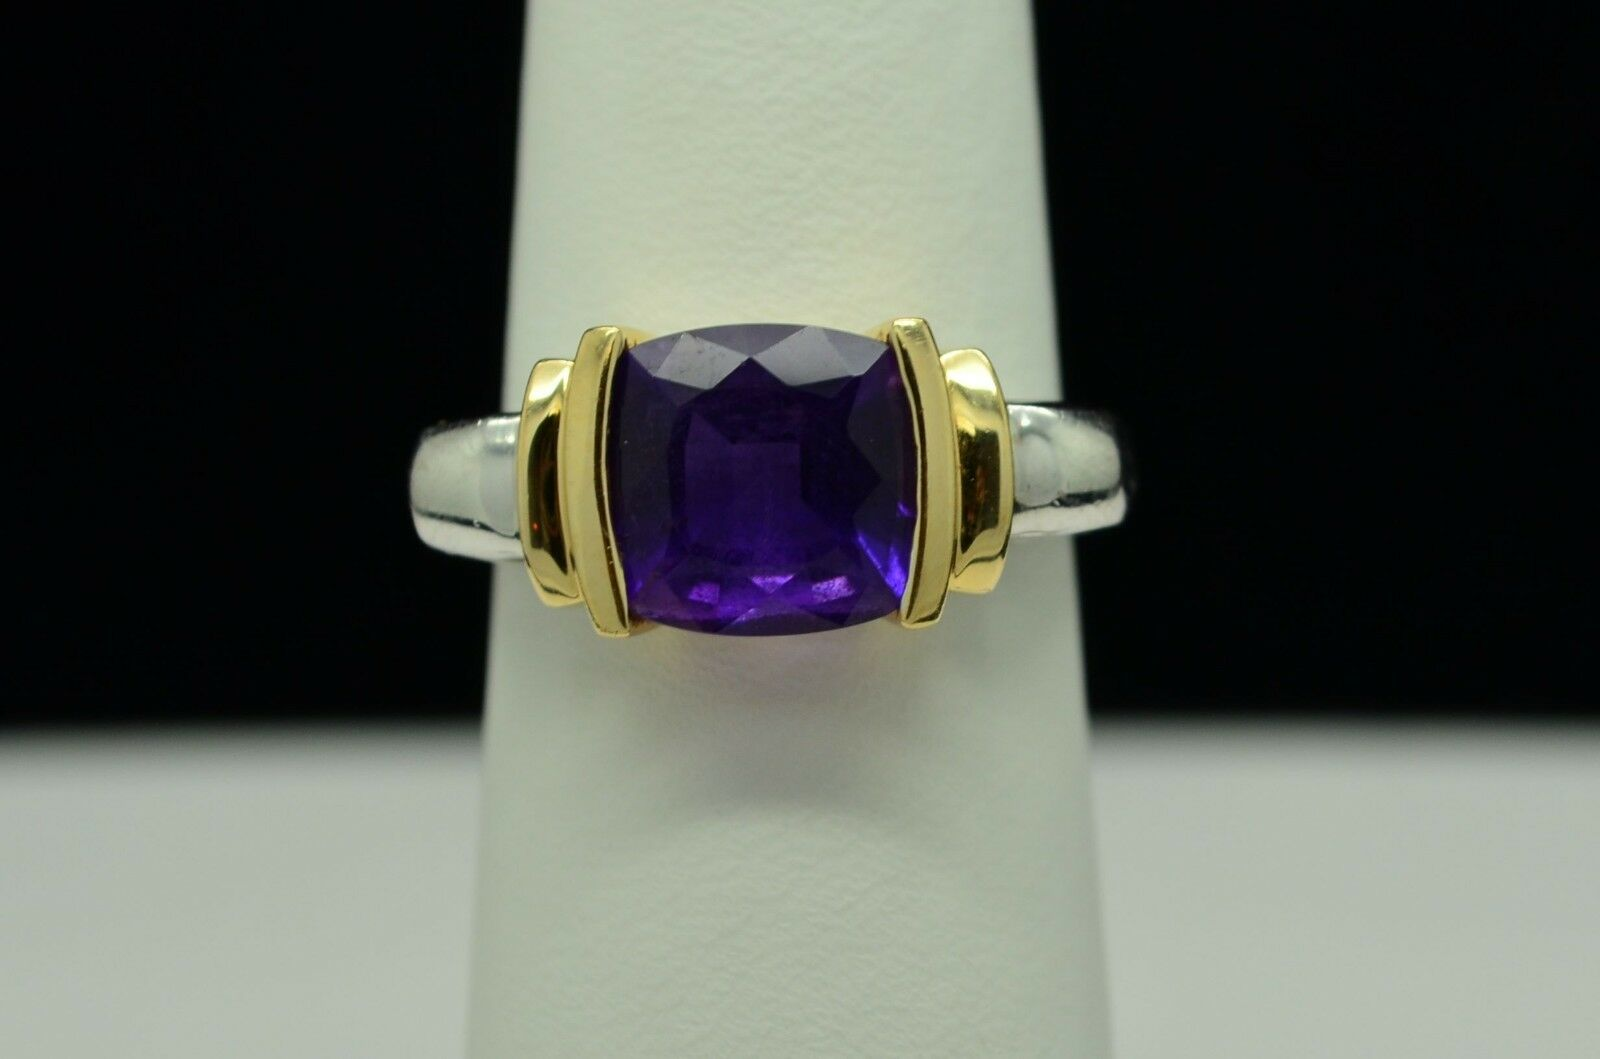 14K YELLOW AND WHITE gold BEAUTIFUL AMETHYST RING SZ 6.5 gold-105